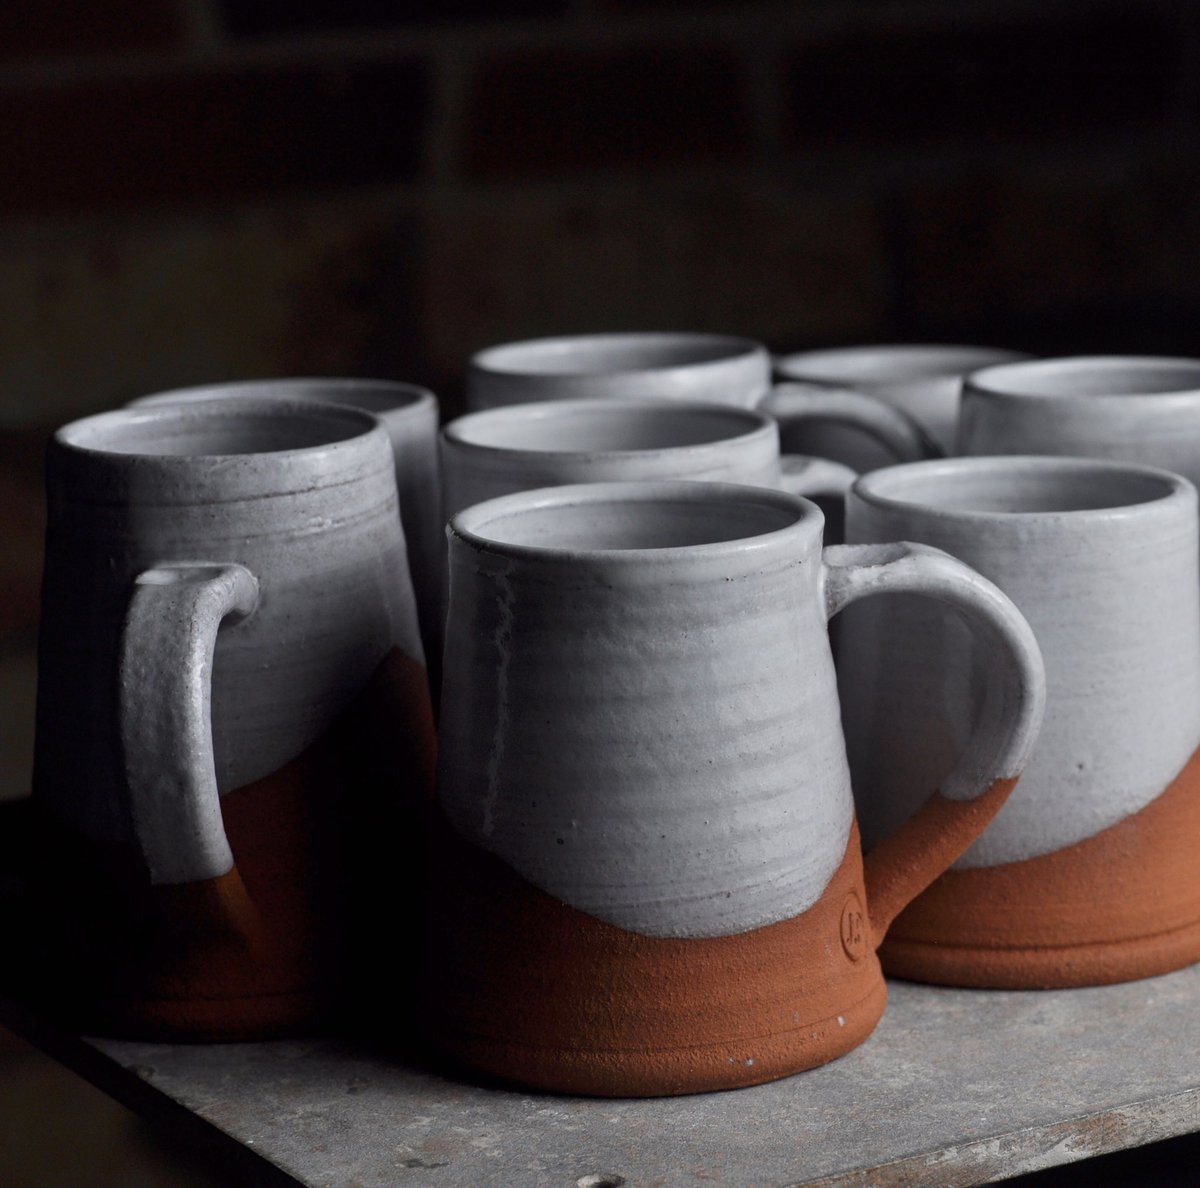 Mr Ps Pots On Twitter That Red Clay Maybe It S Not So Bad After All Chimney Mugs Potter Studiopottery Pottery Ceramic Madeinderbyshire Mug Clay Terracotta White Coffee